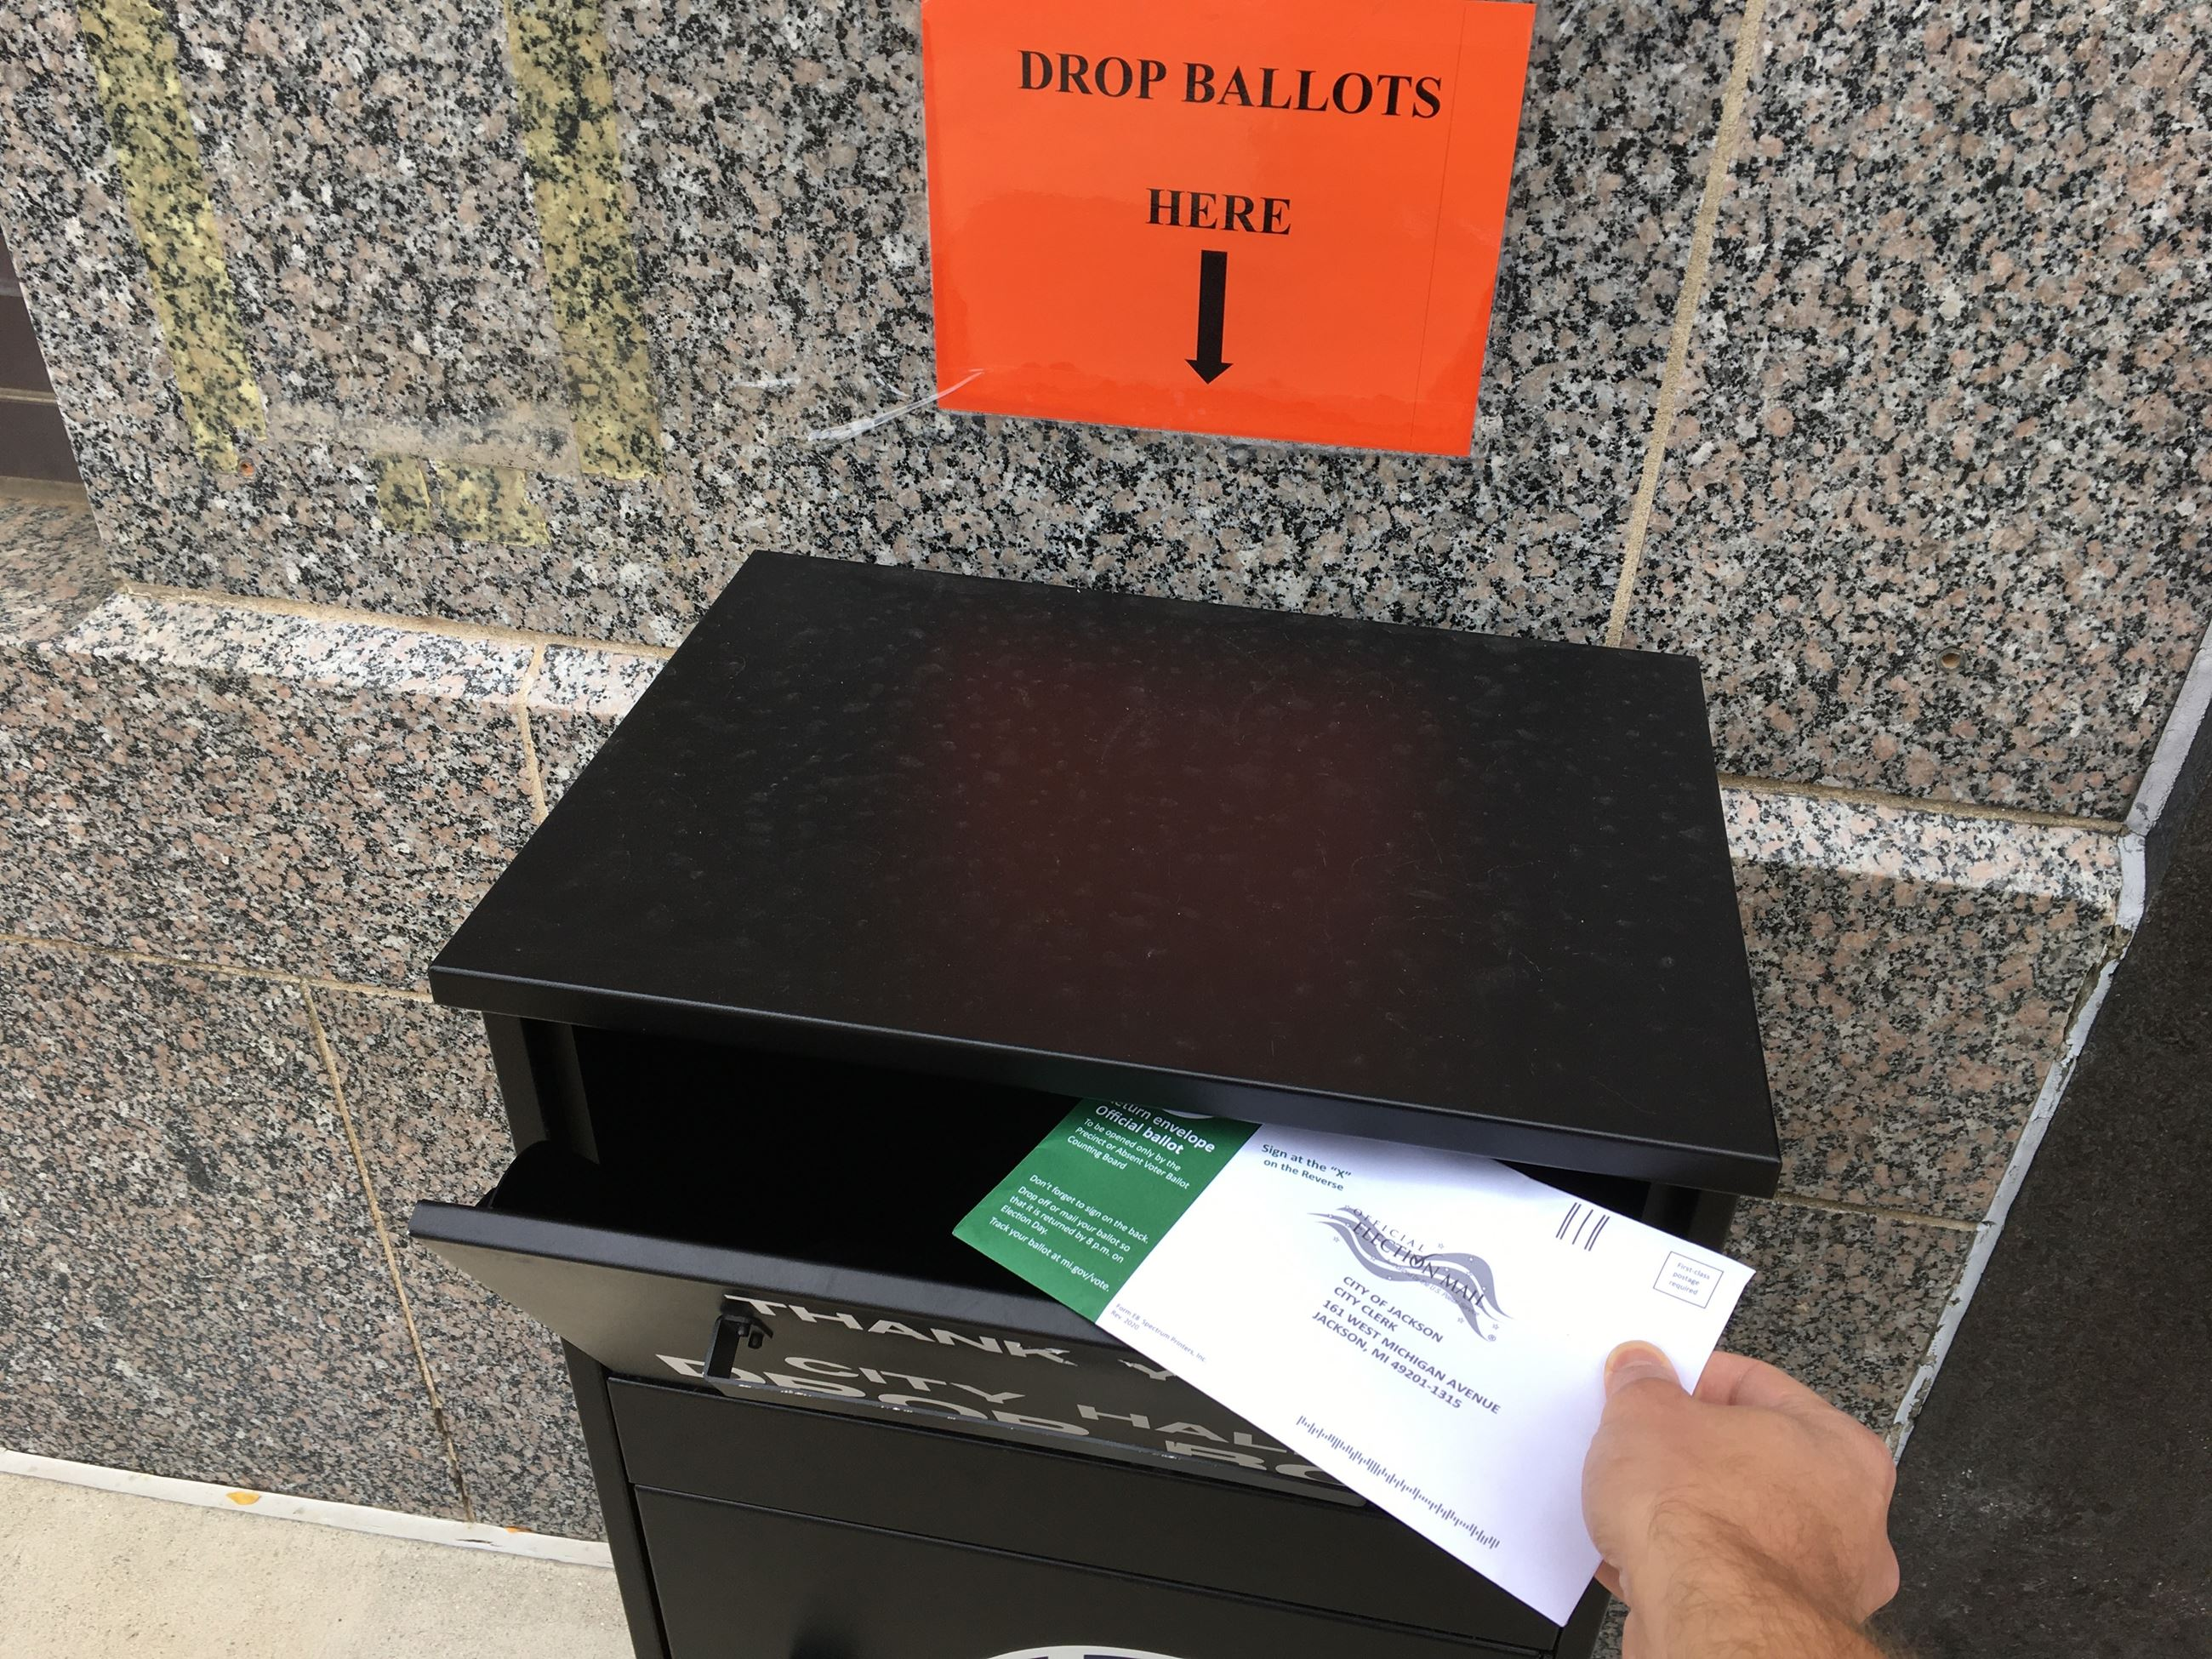 City Hall ballot drop box